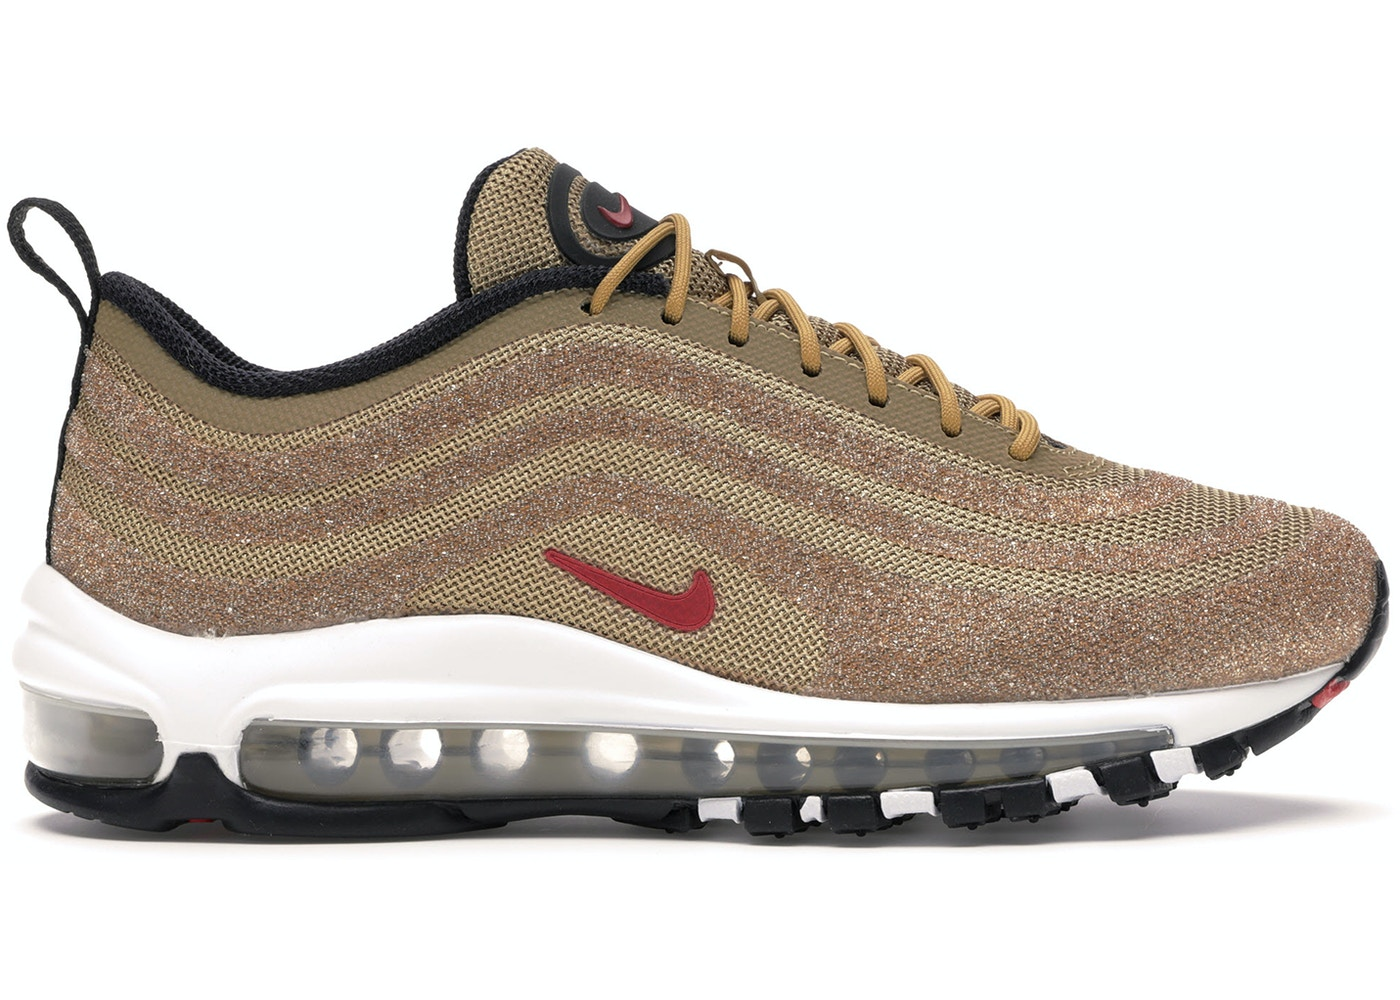 outlet store b2040 01e31 Air Max 97 LX Swarovski Gold (W)